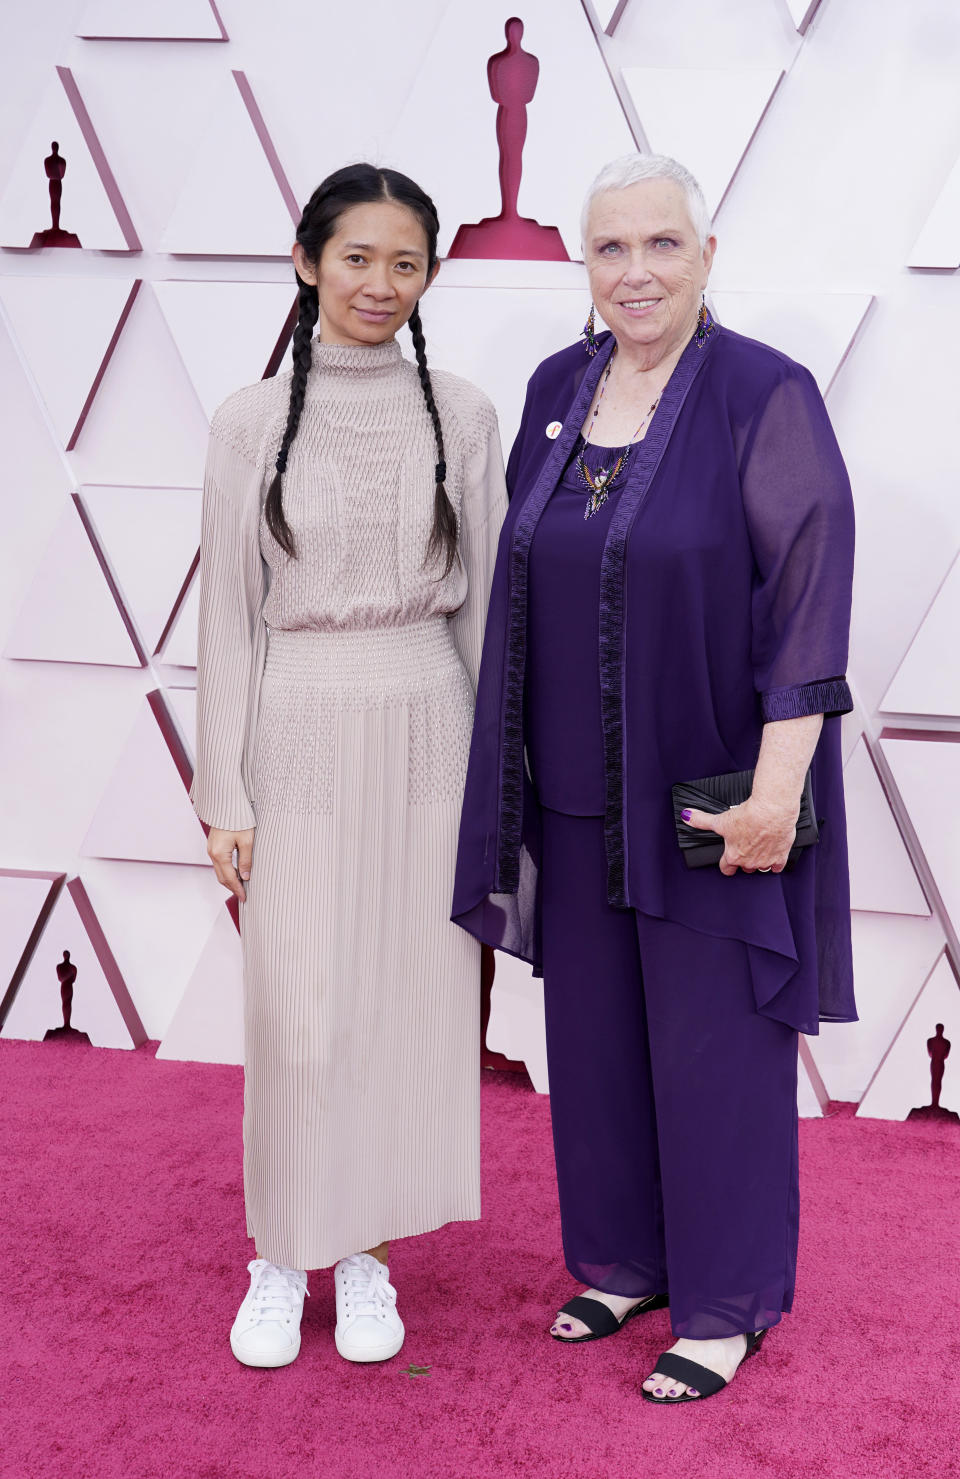 Chloe Zhao, left, and Charlene Swankie arrive at the Oscars on Sunday, April 25, 2021, at Union Station in Los Angeles. (AP Photo/Chris Pizzello, Pool)